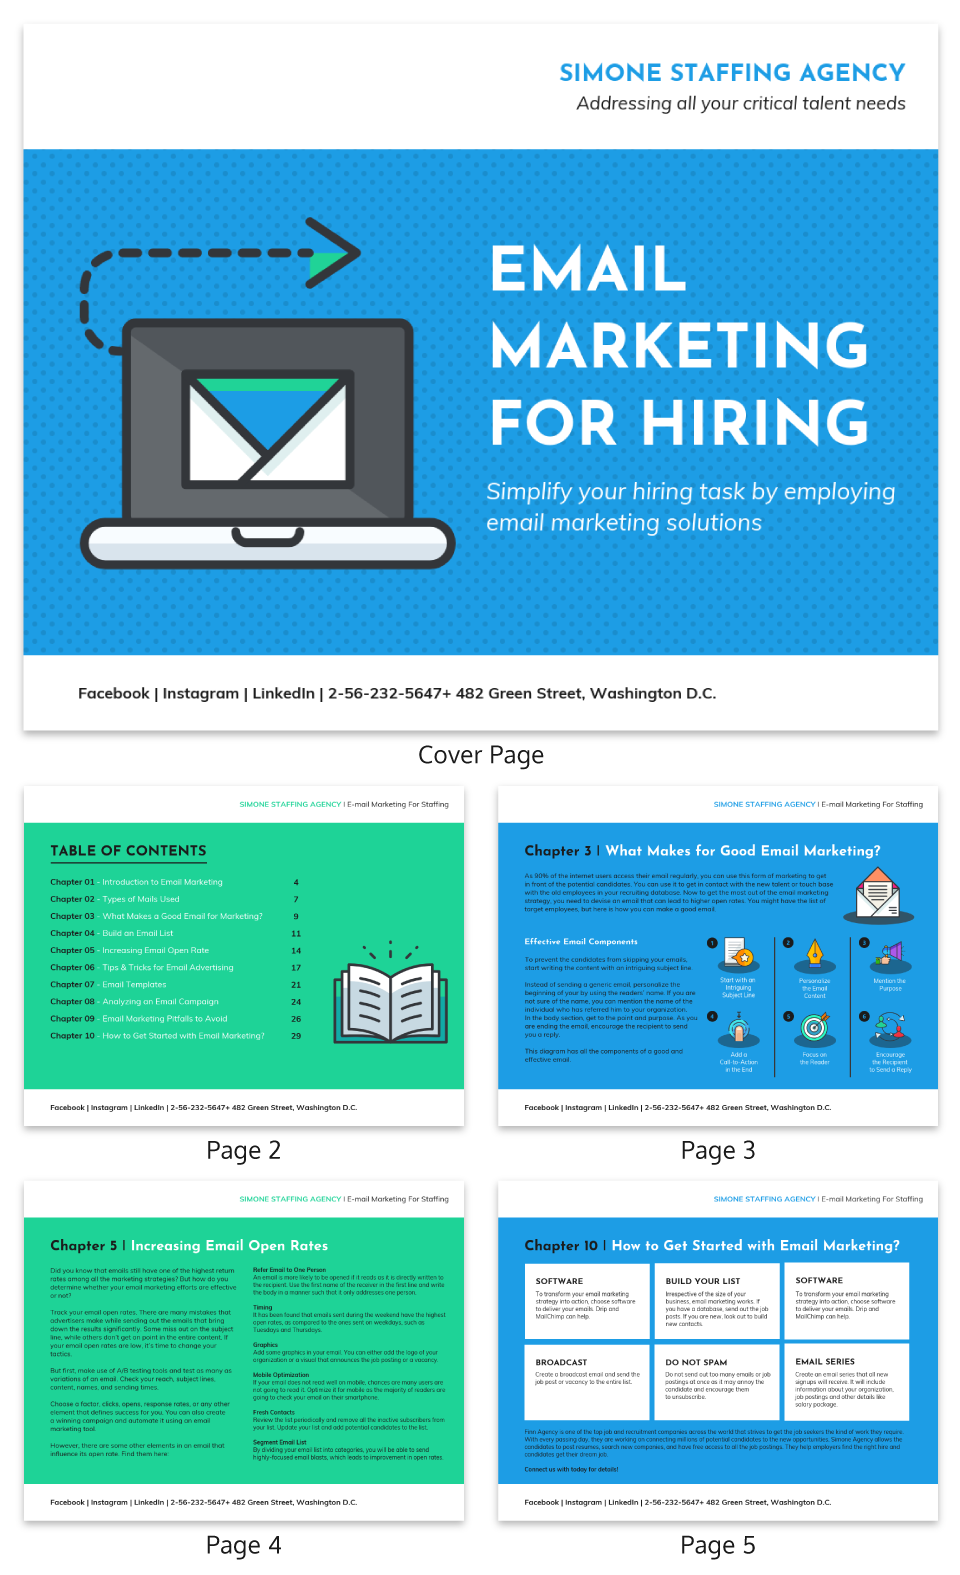 Email Marketing Infographic Email Marketing For Hiring White Paper